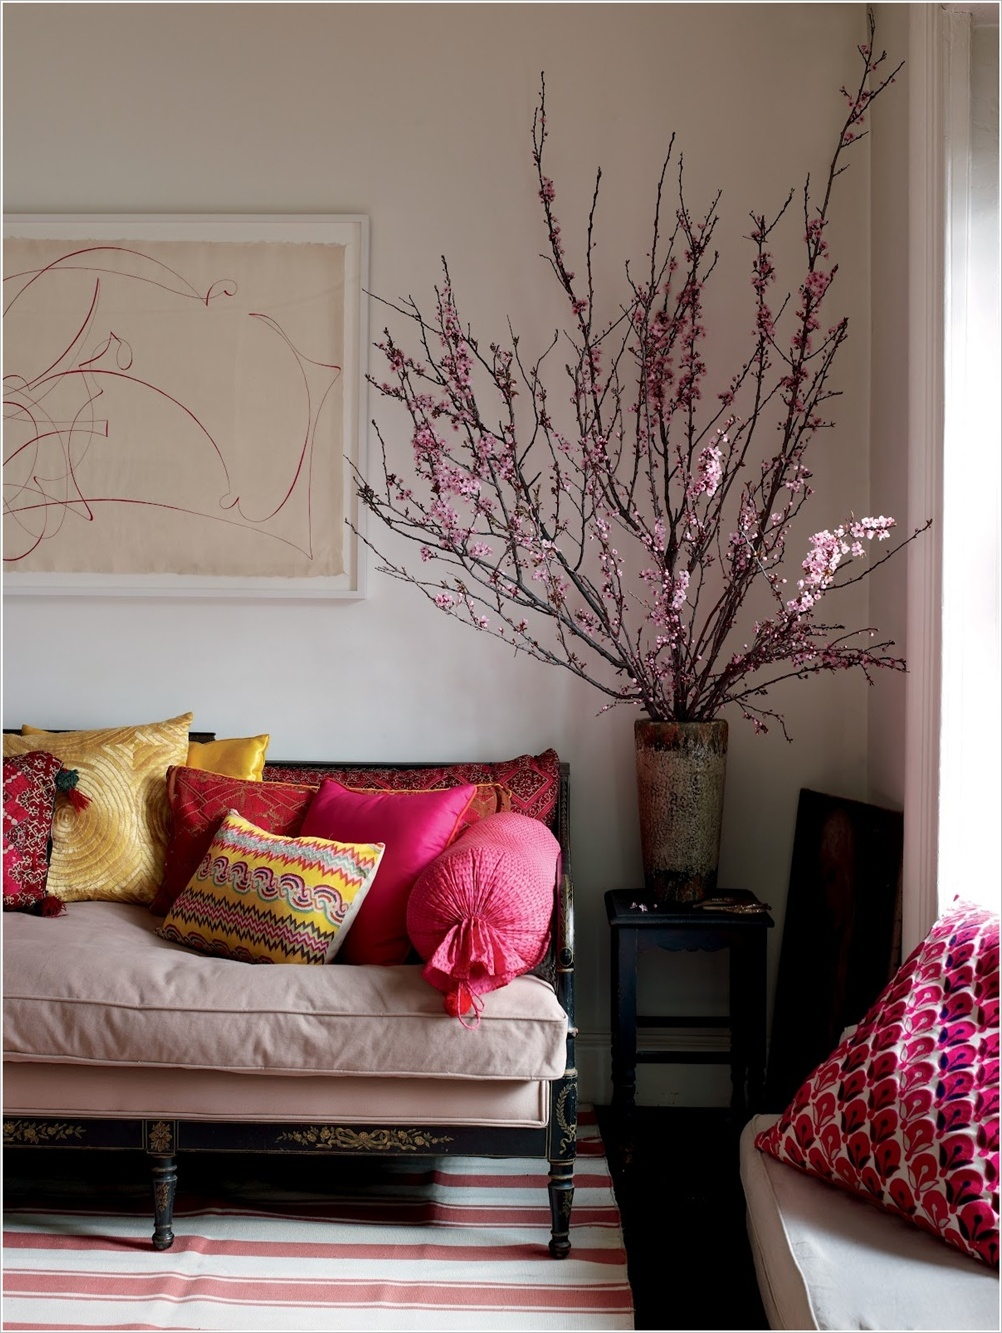 Interior Decor With Cherry Blossoms !